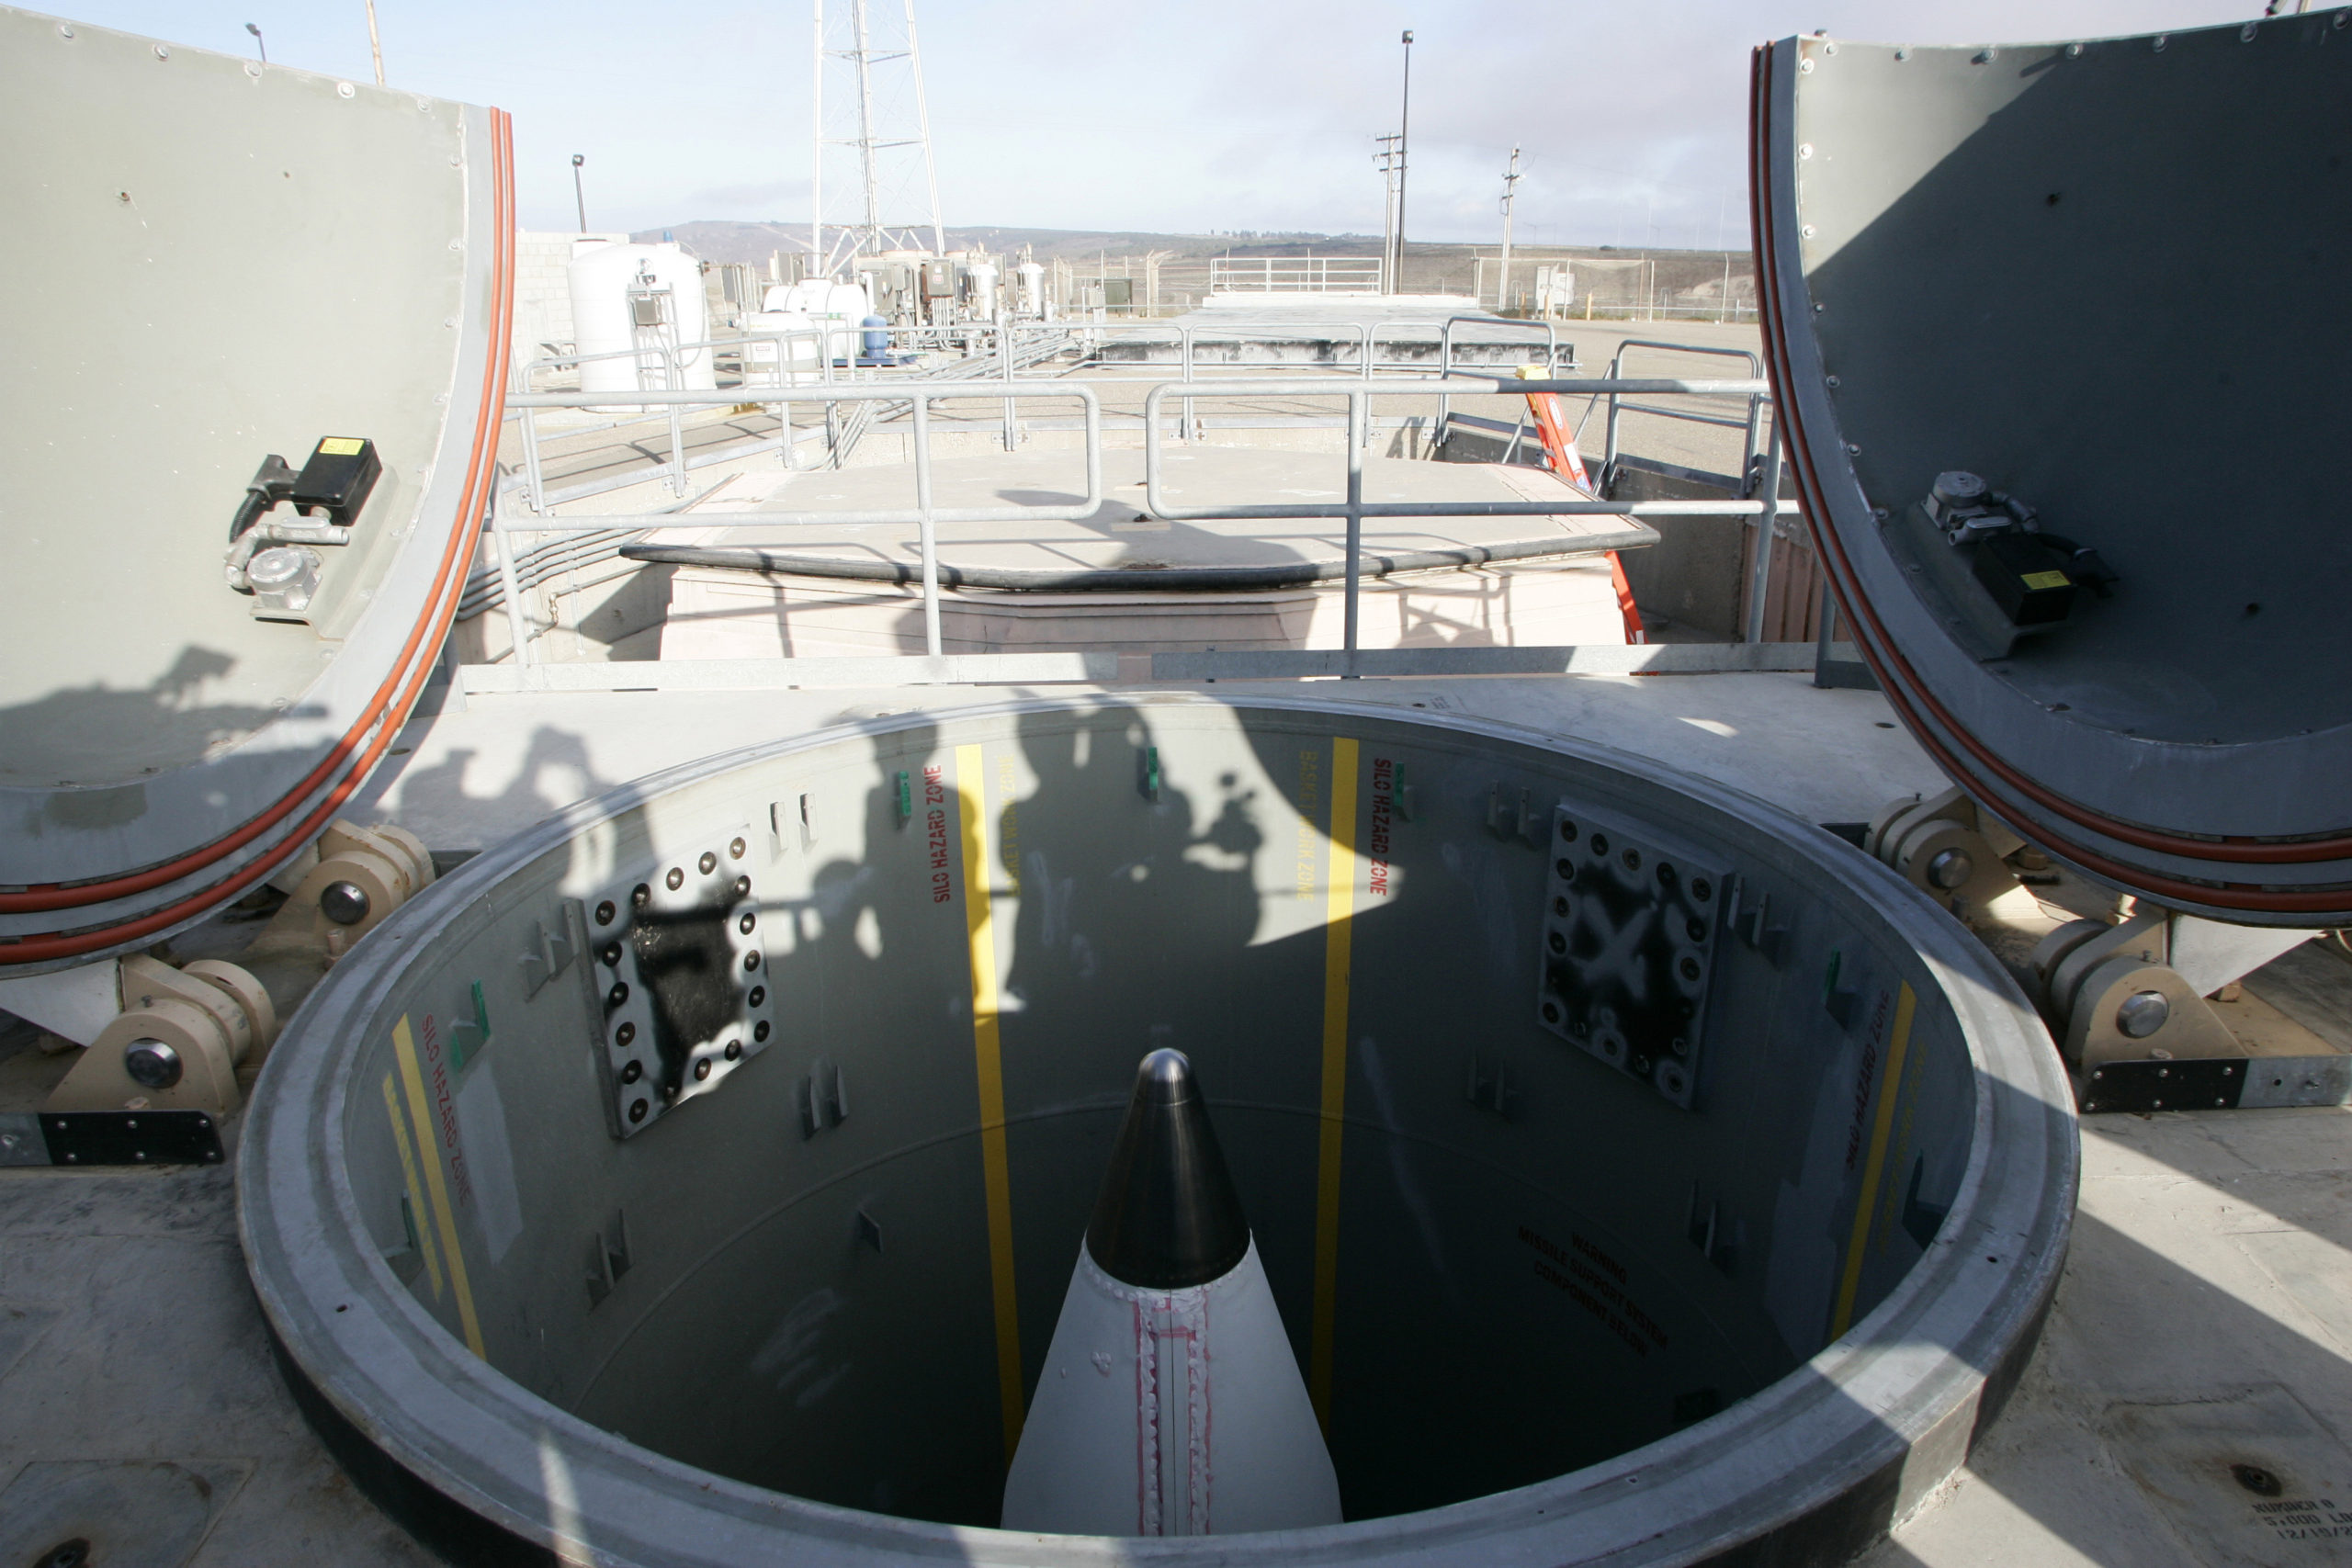 A long-range ground-based missile silo at the Vandenberg Air Force Base in California